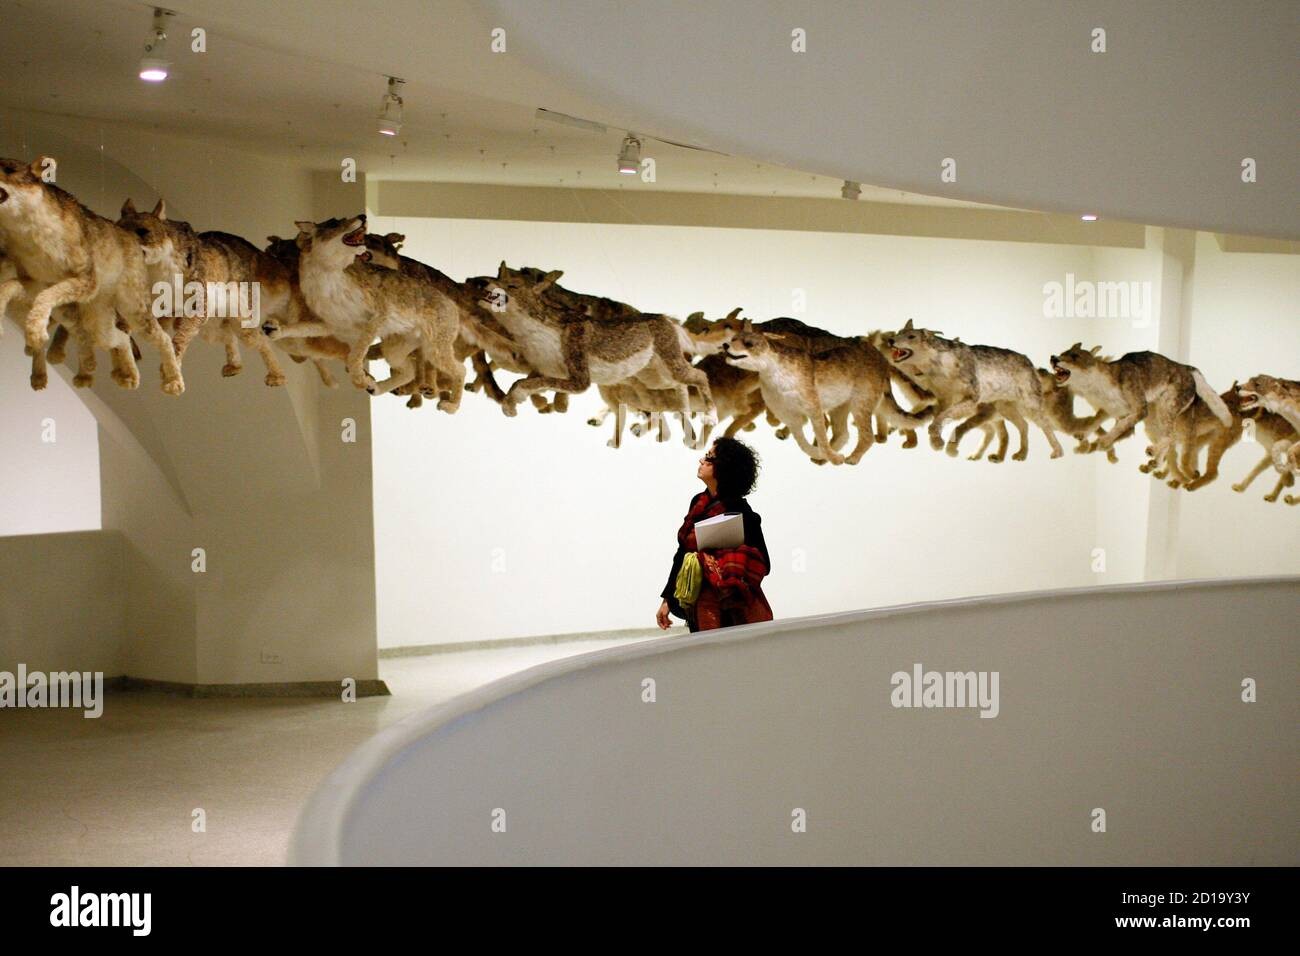 """A visitor to the Guggenheim Museum walks through the installation """"Head On"""" by the artist Cai Guo-Qiang in New York, February 21, 2008. The piece is part of the artist's exhibition Cai Guo-Qiang: I Want to Believe. REUTERS/Keith Bedford (UNITED STATES) Foto de stock"""